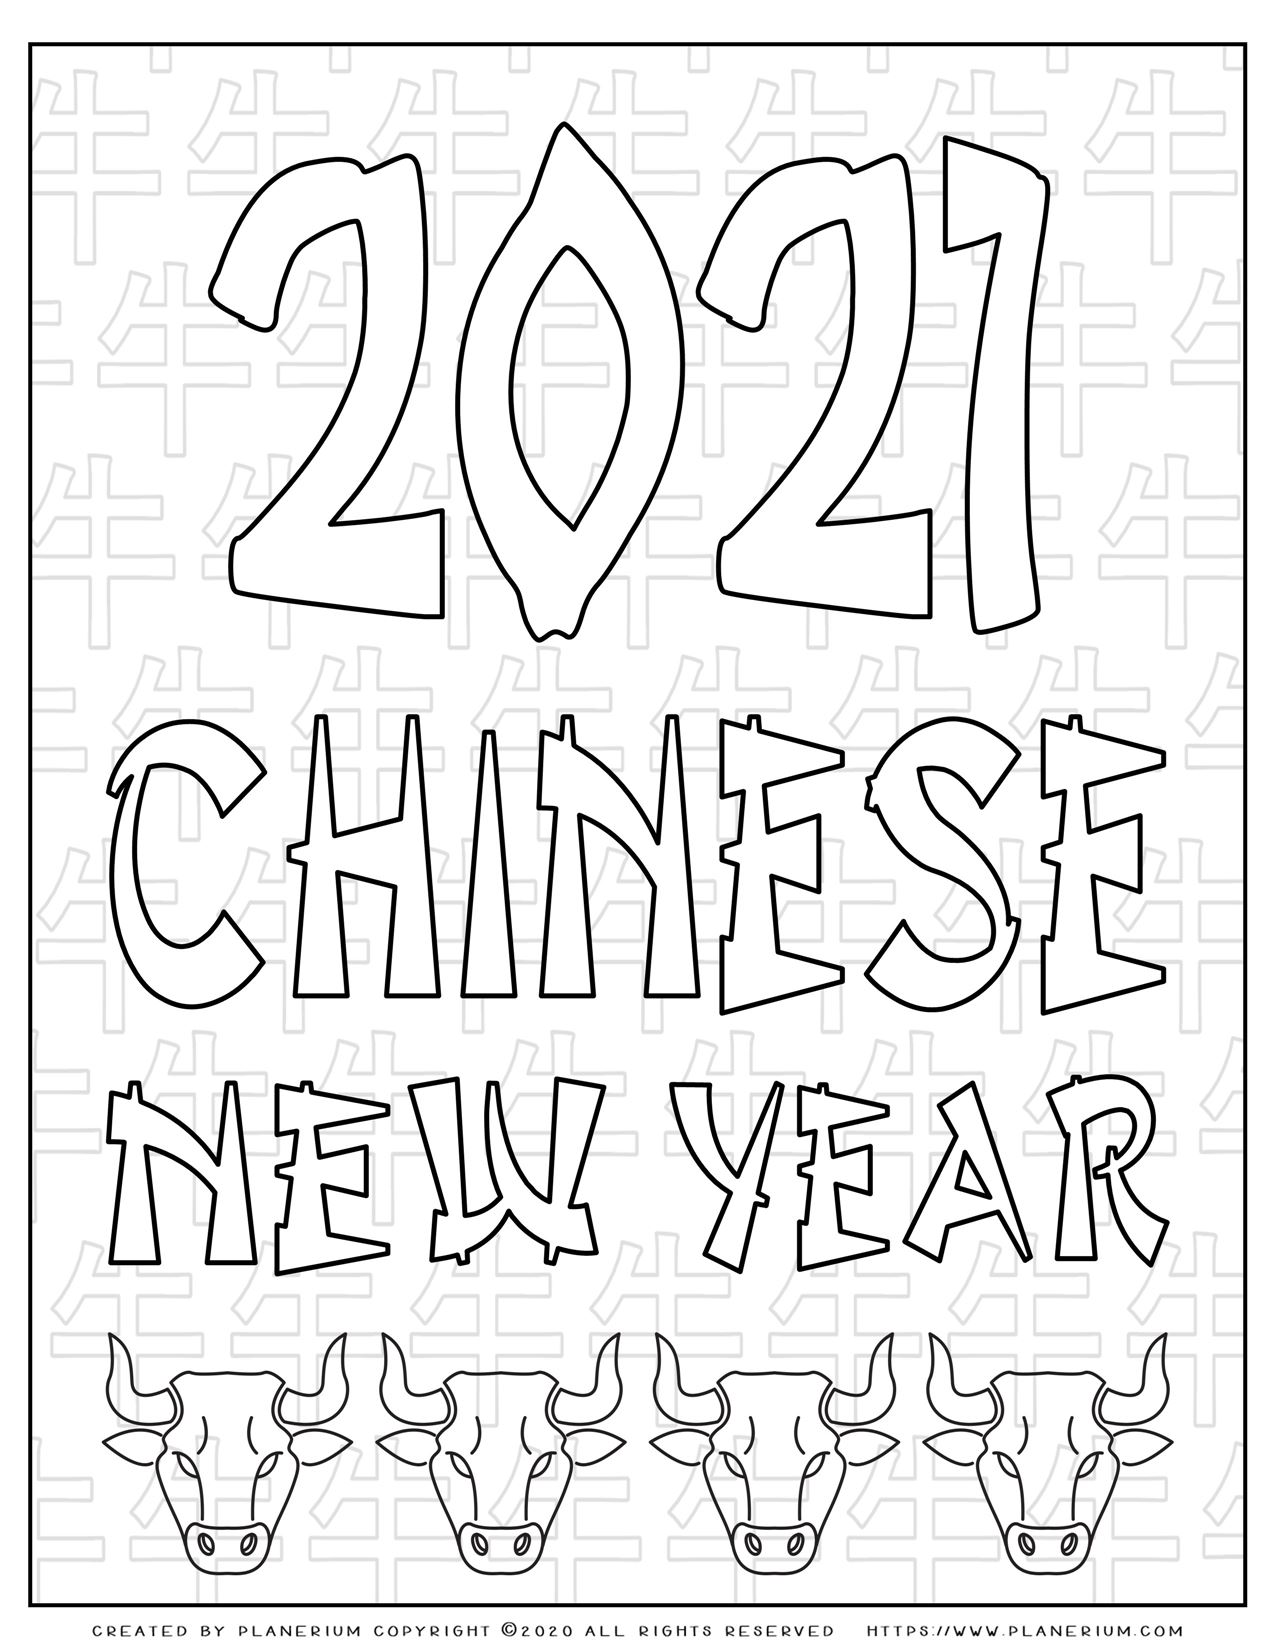 Chinese new Year 2021 - Year of the Ox - Coloring Page - Poster | Planerium